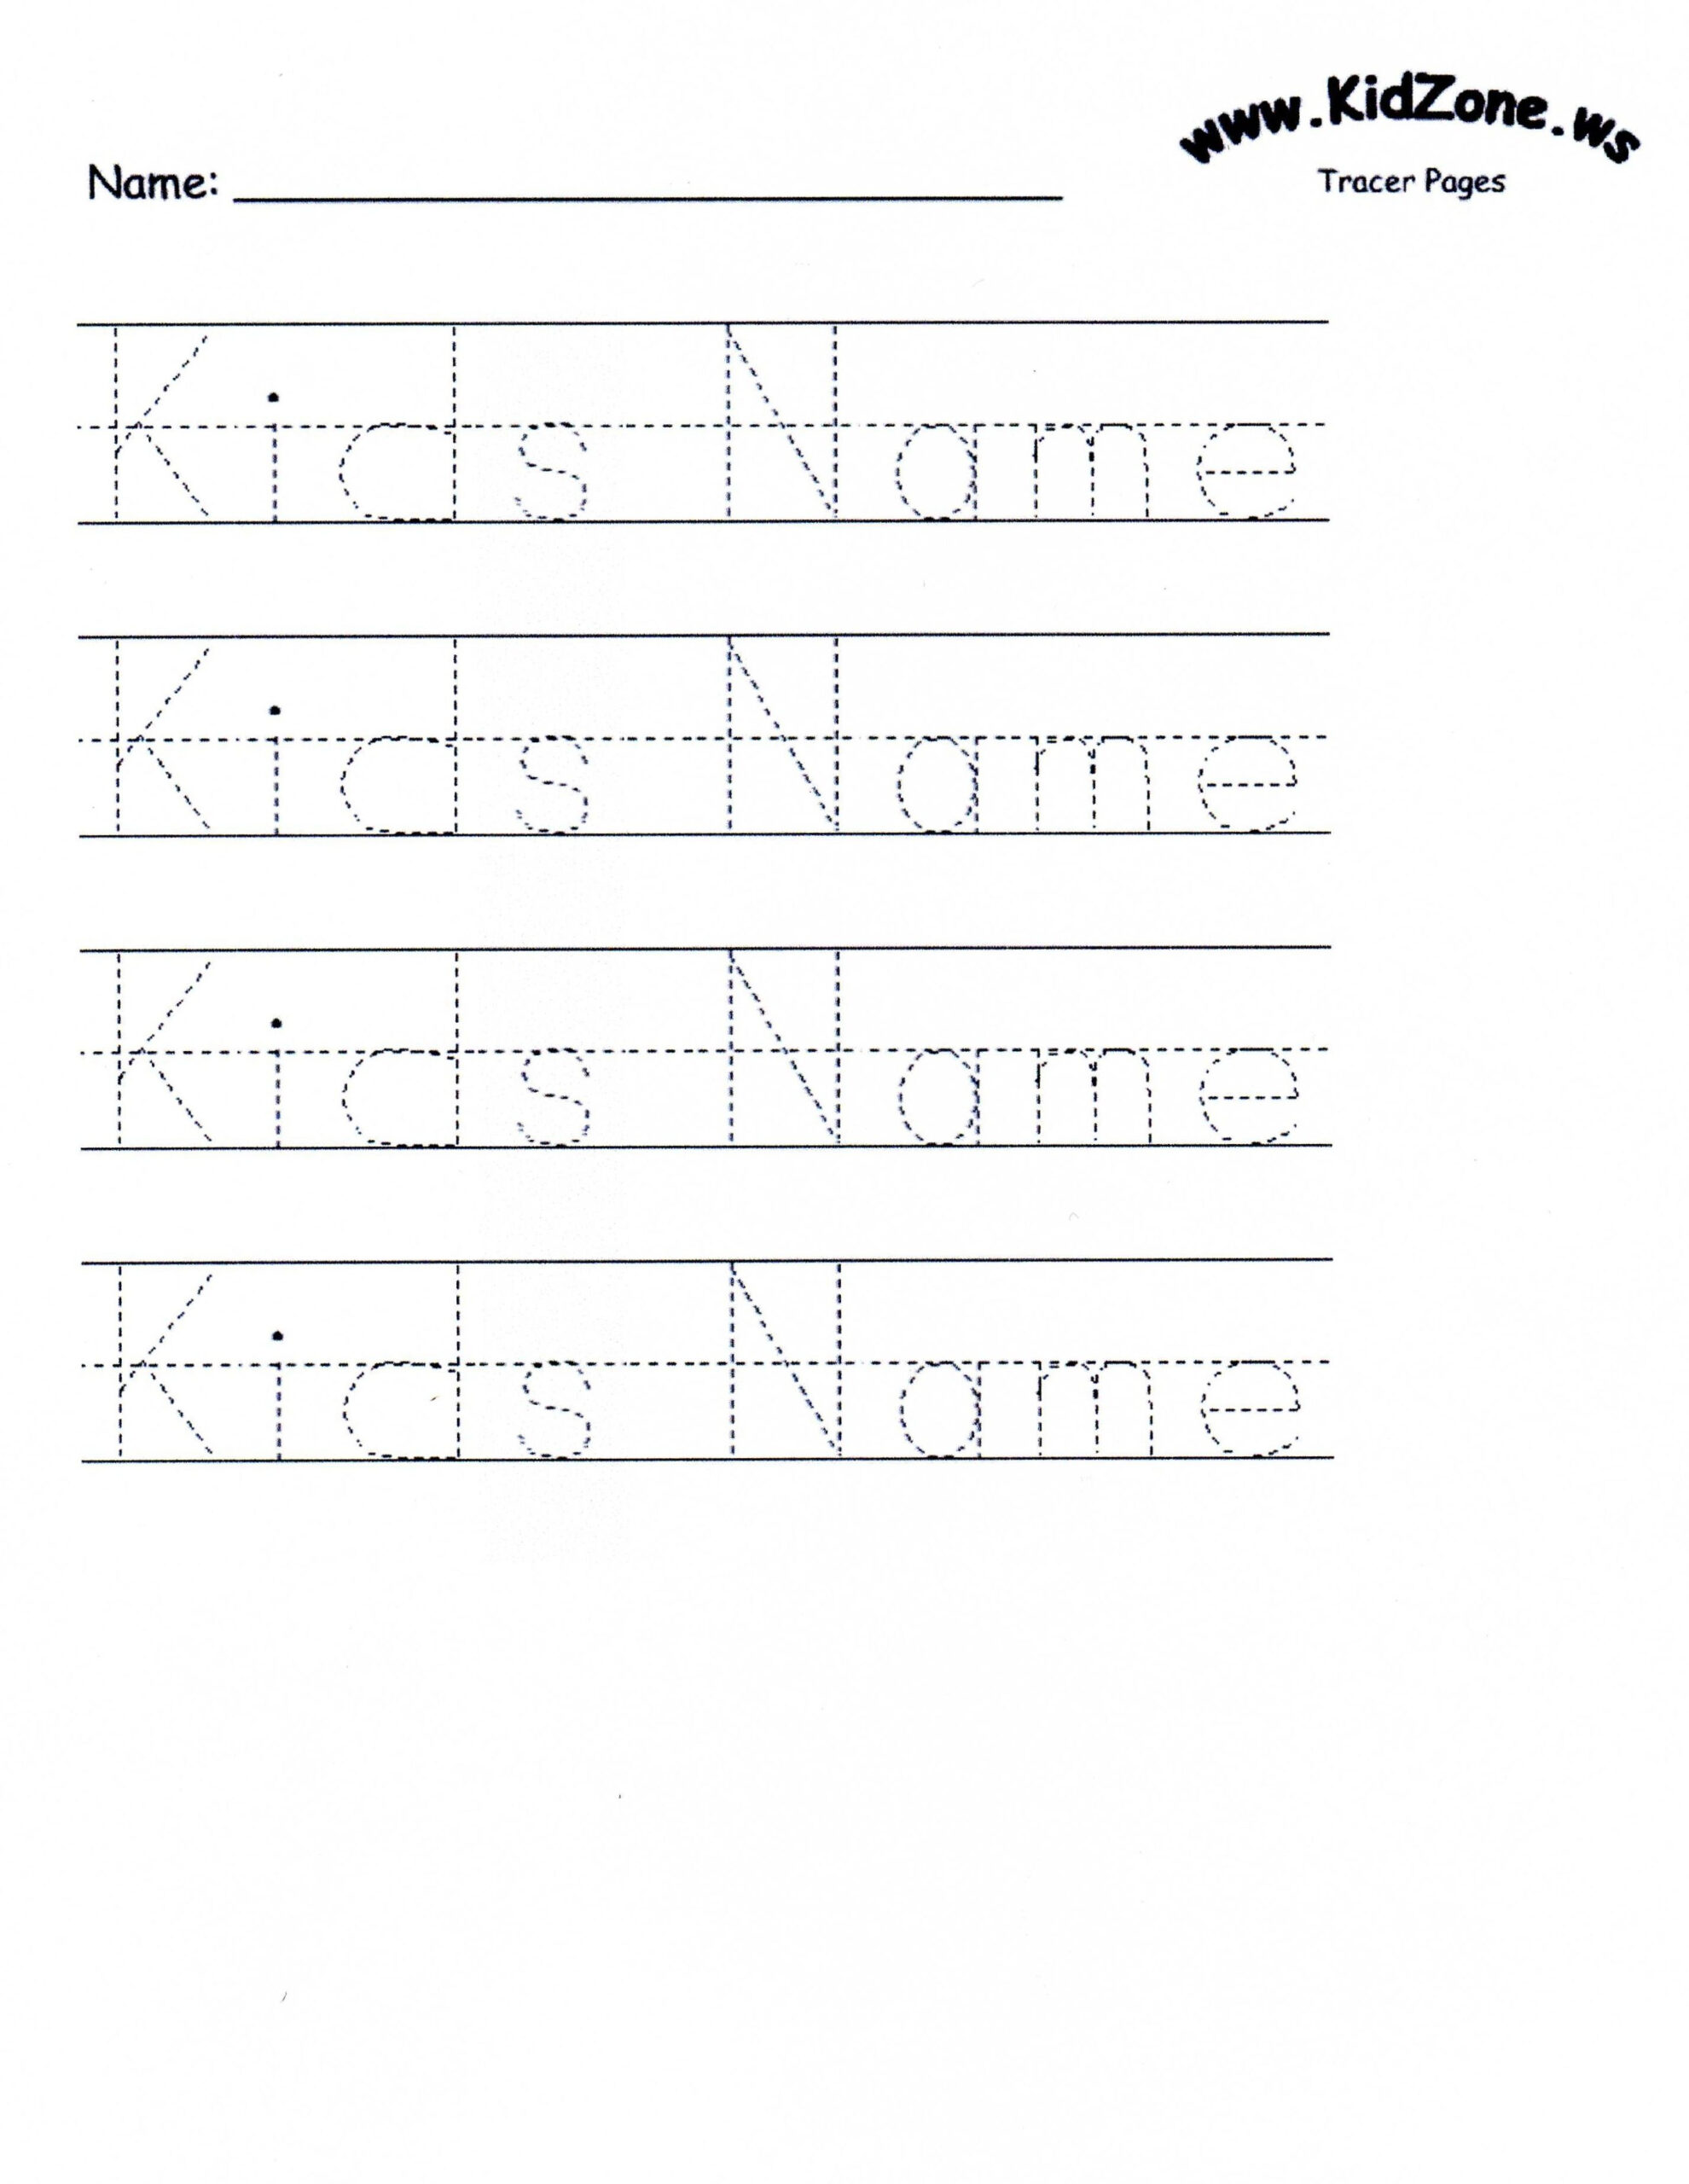 Custom Tracer Pages | Tracing Worksheets Preschool, Name in Letter Tracing Generator